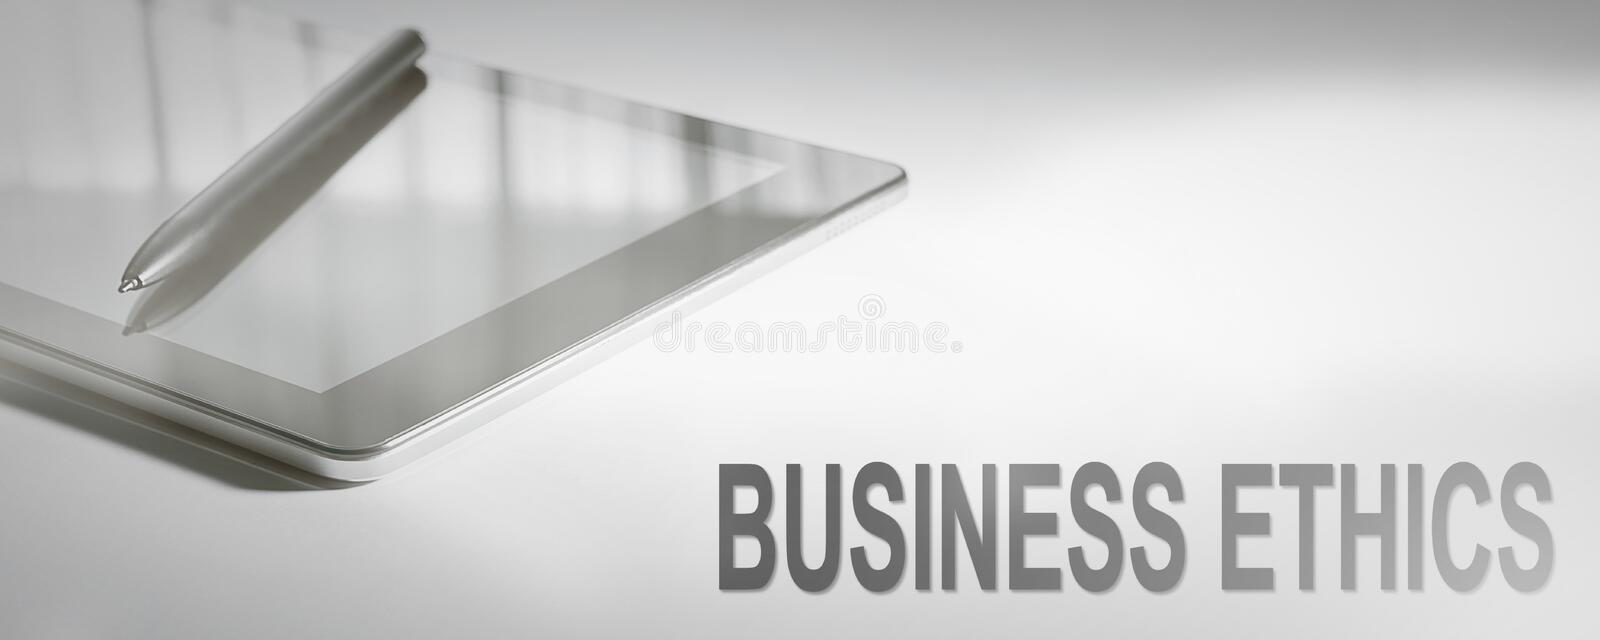 BUSINESS ETHICS Business Concept Digital Technology. Graphic Con stock image